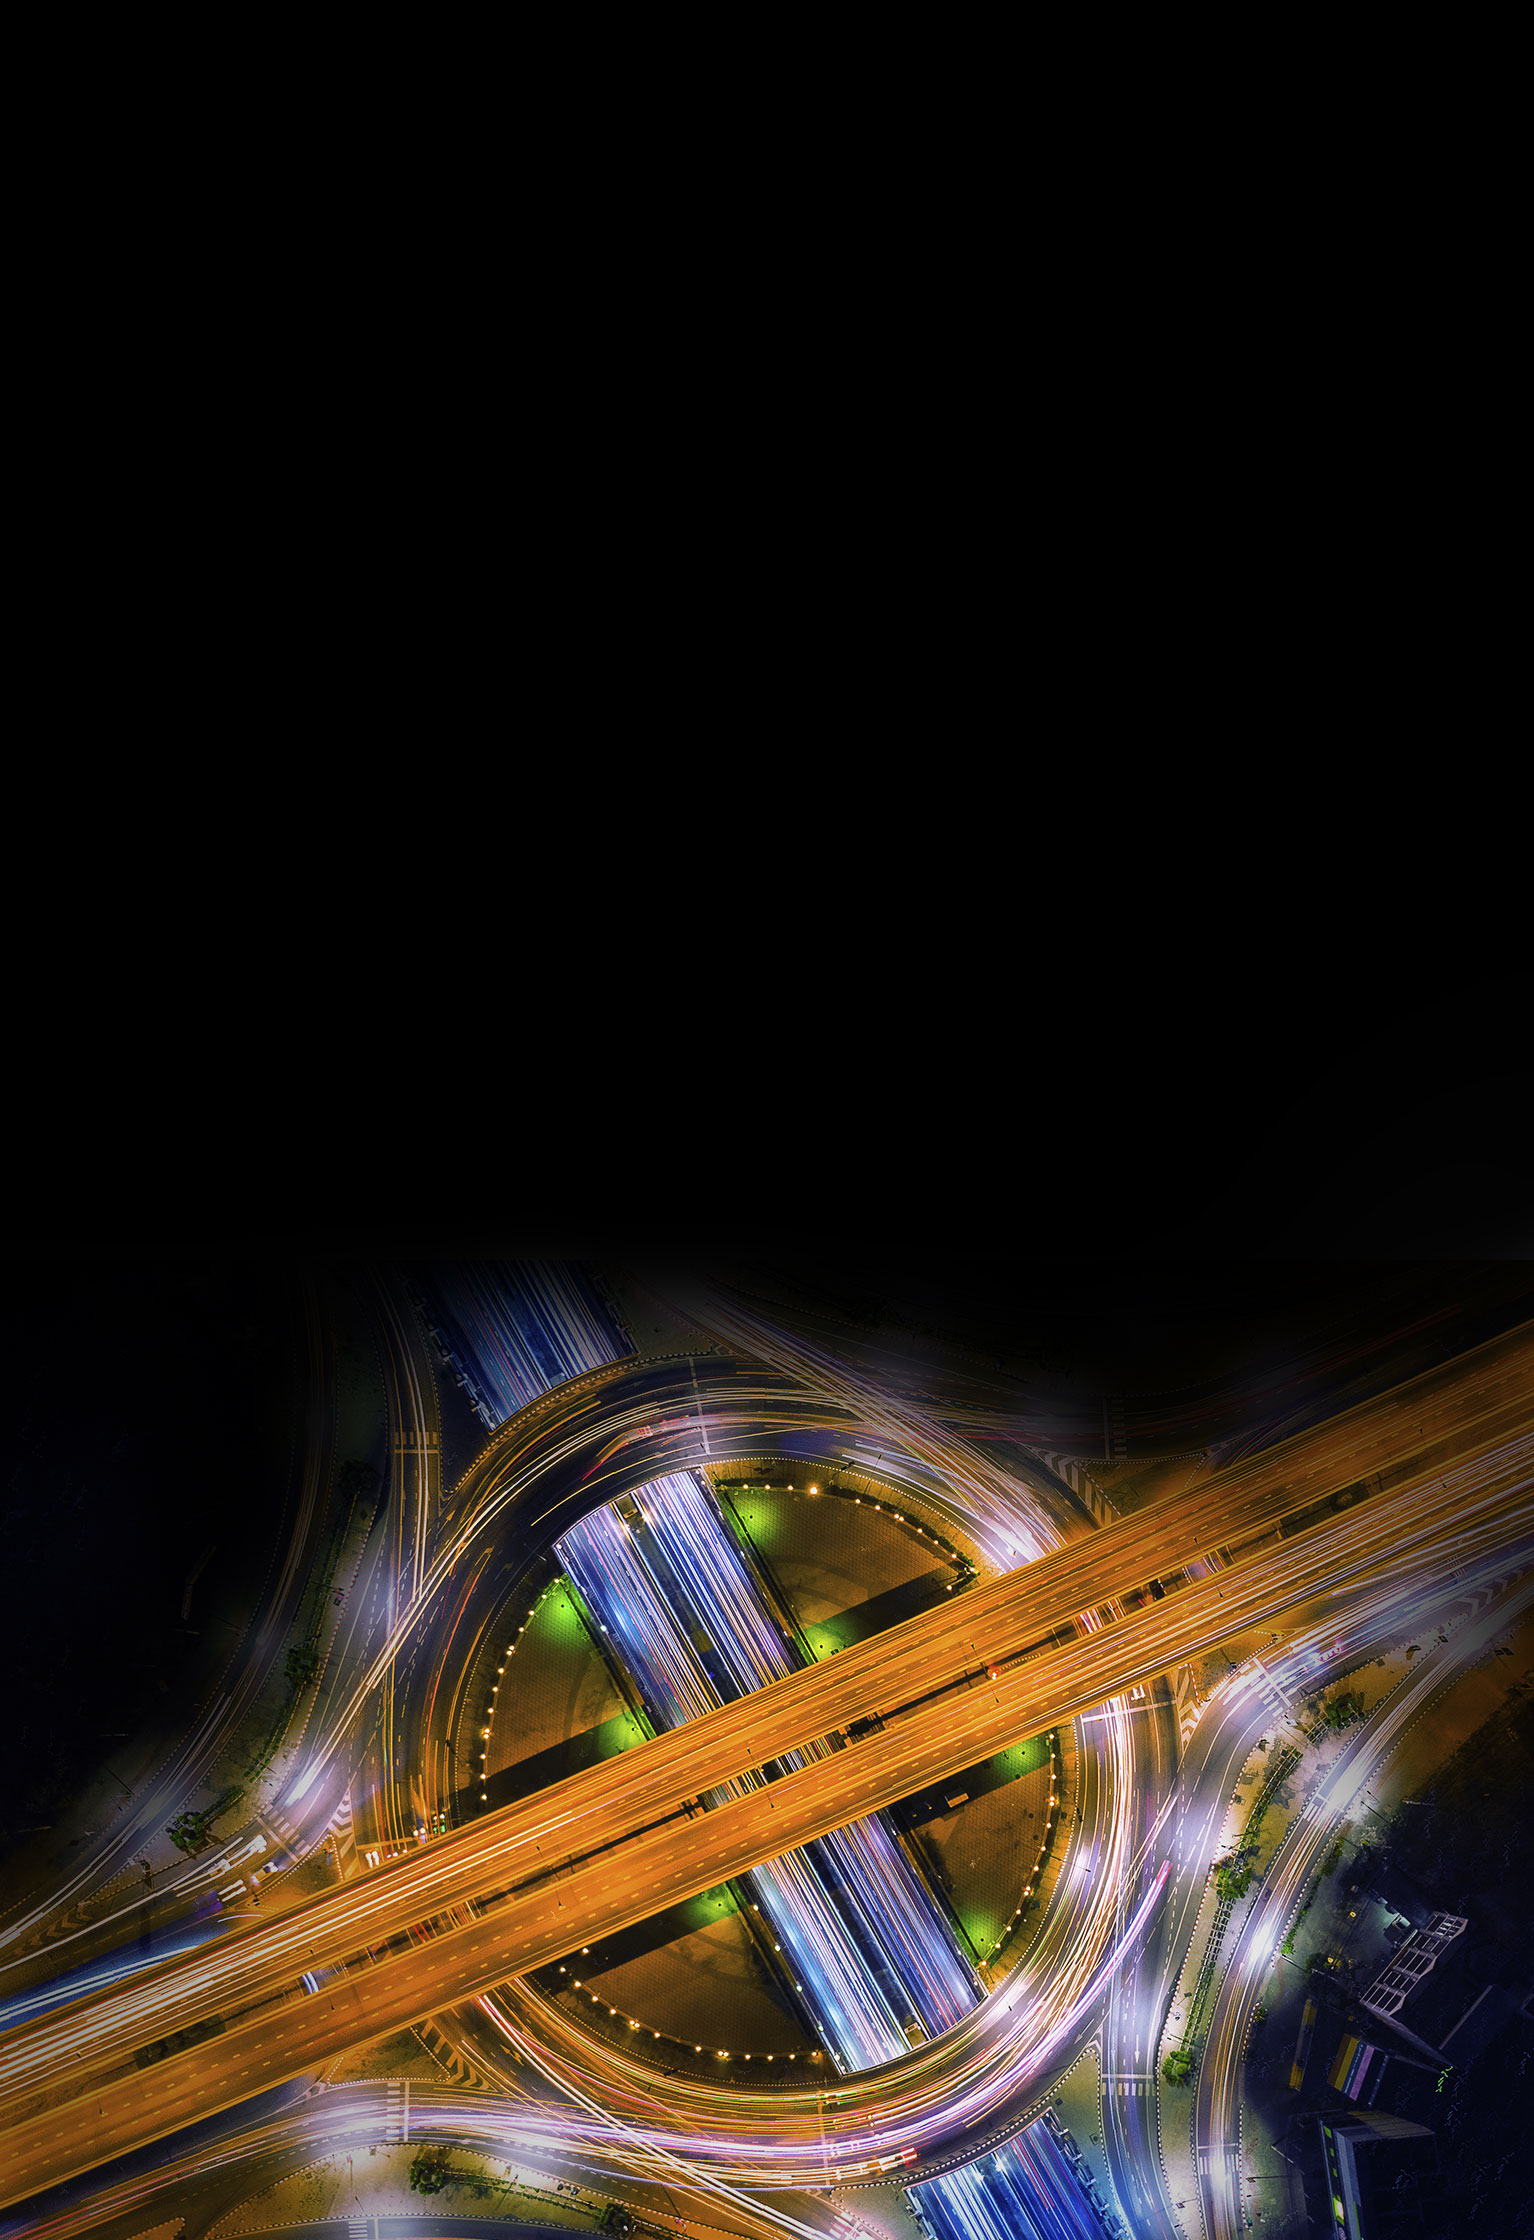 Long exposure of a road system at night